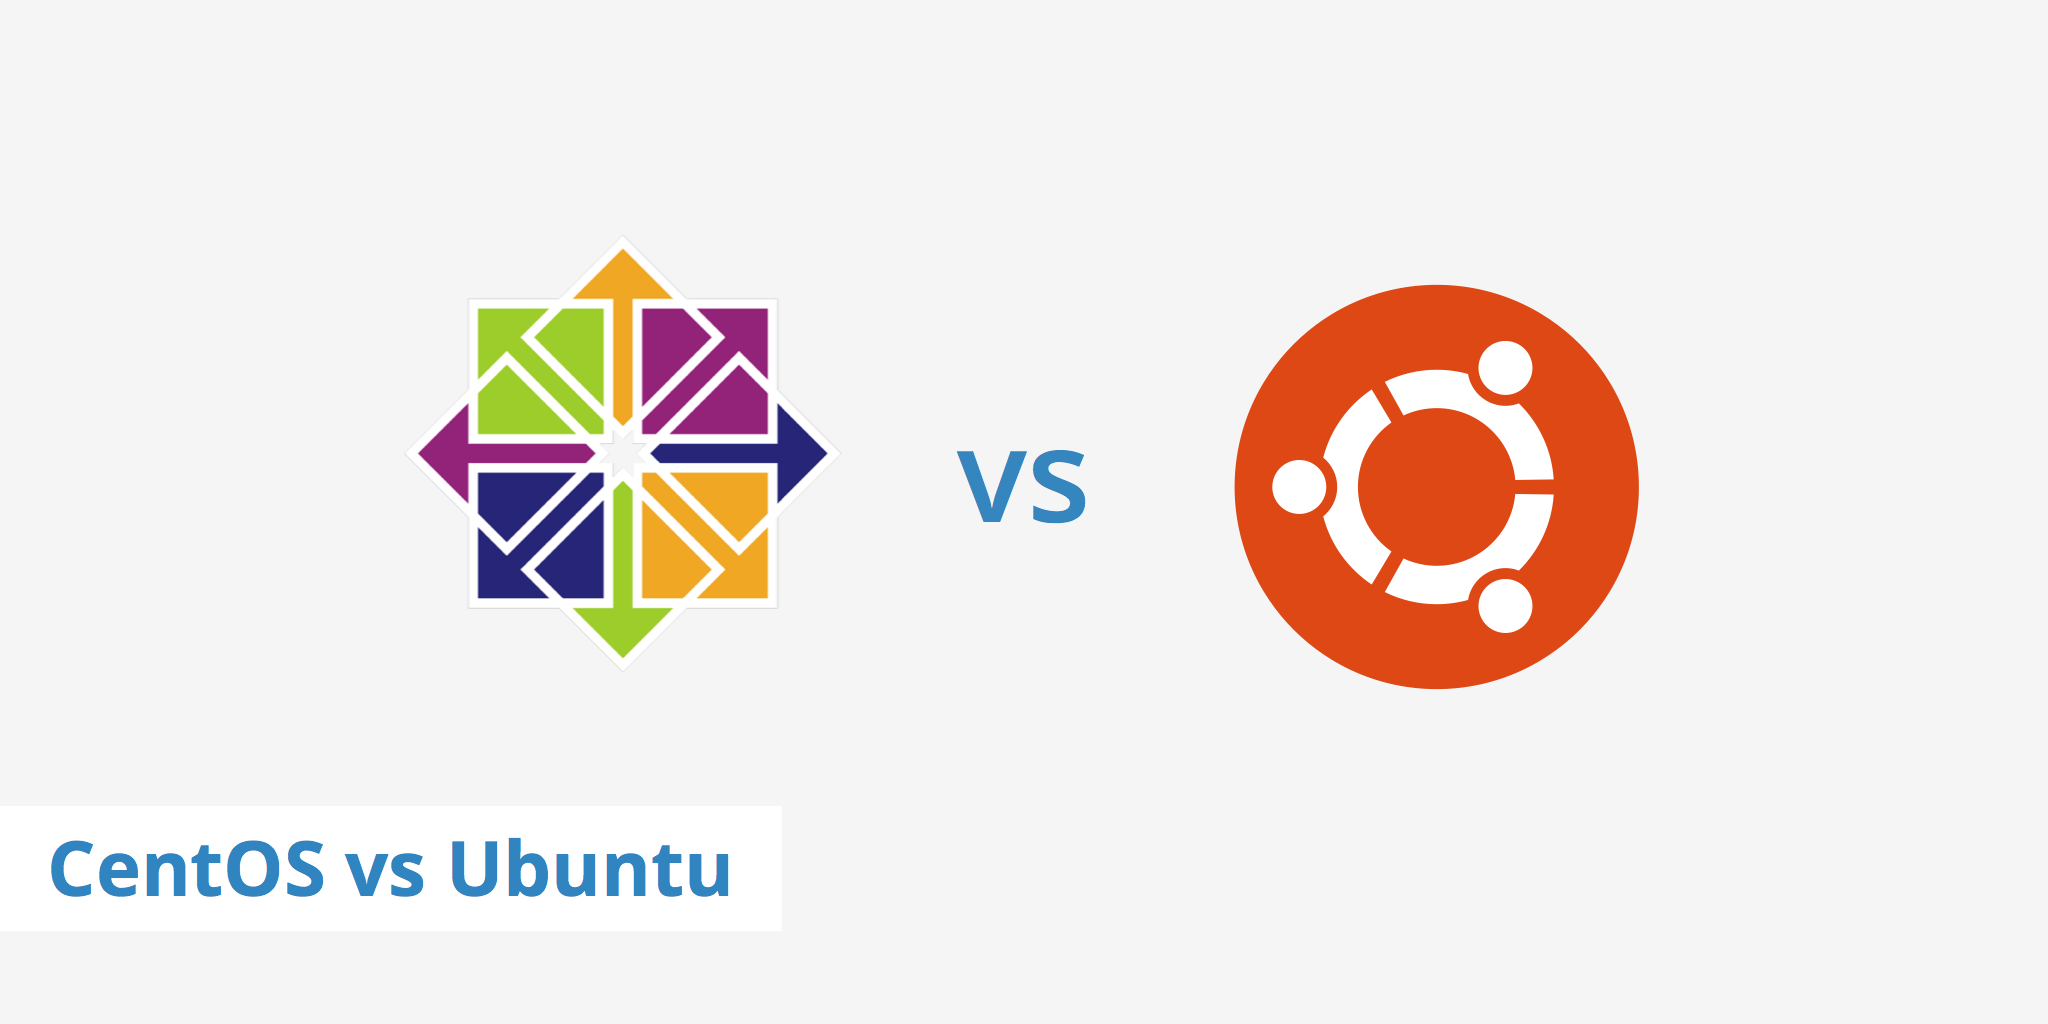 CentOS vs Ubuntu - Which One Wins?